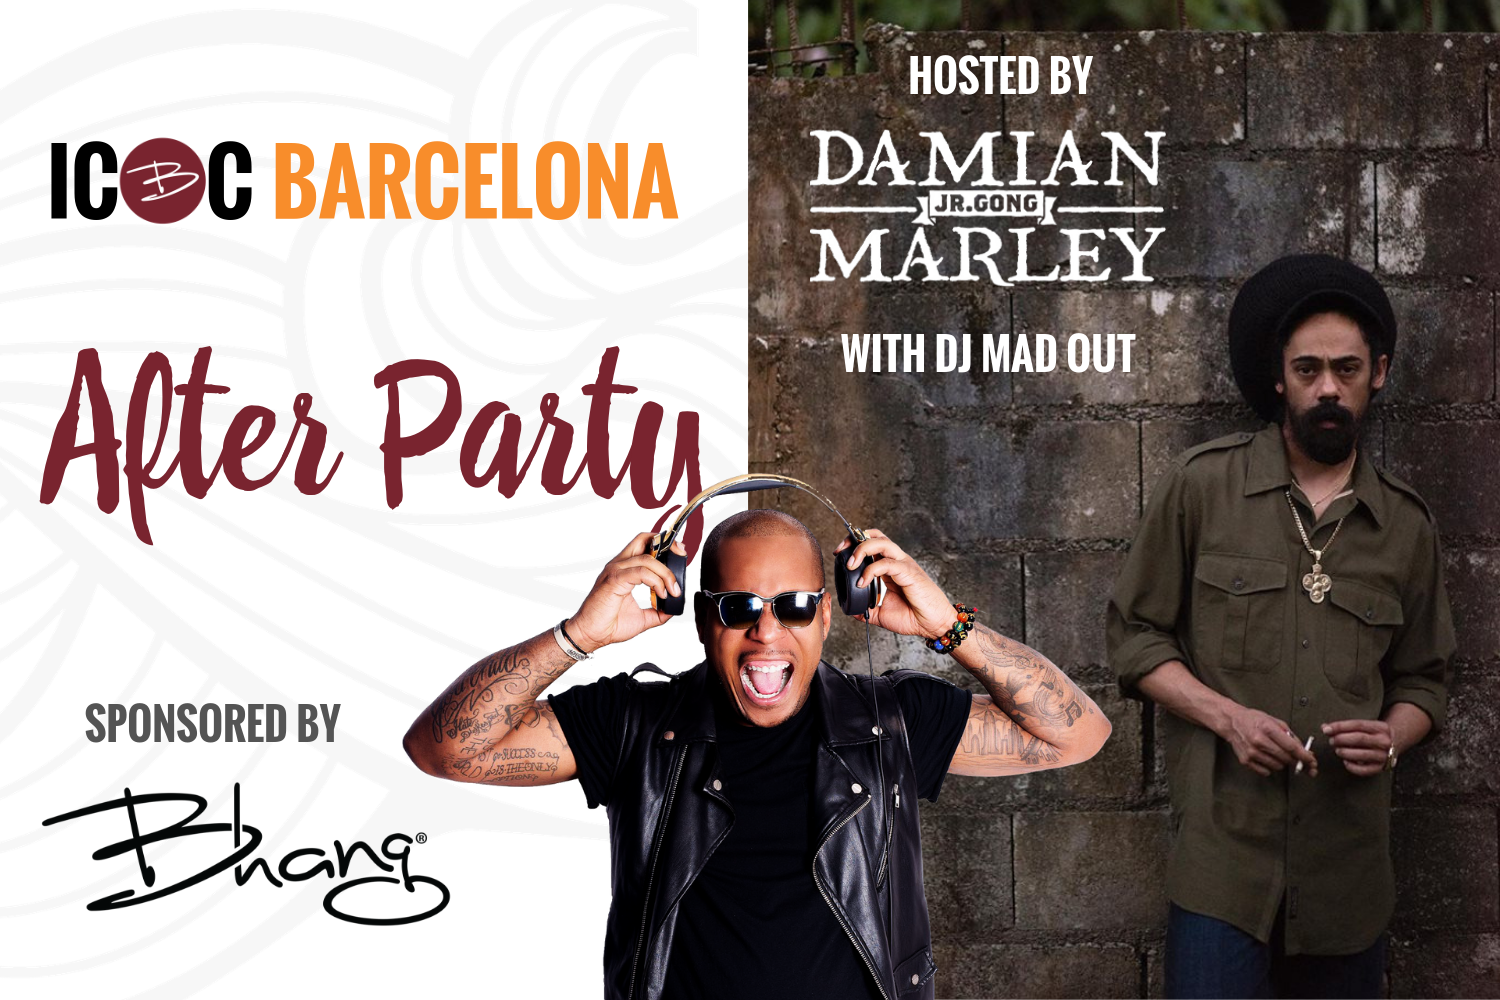 Barcelona After Party sponsored by Bhang, with host Damian Marley and DJ Mad Out